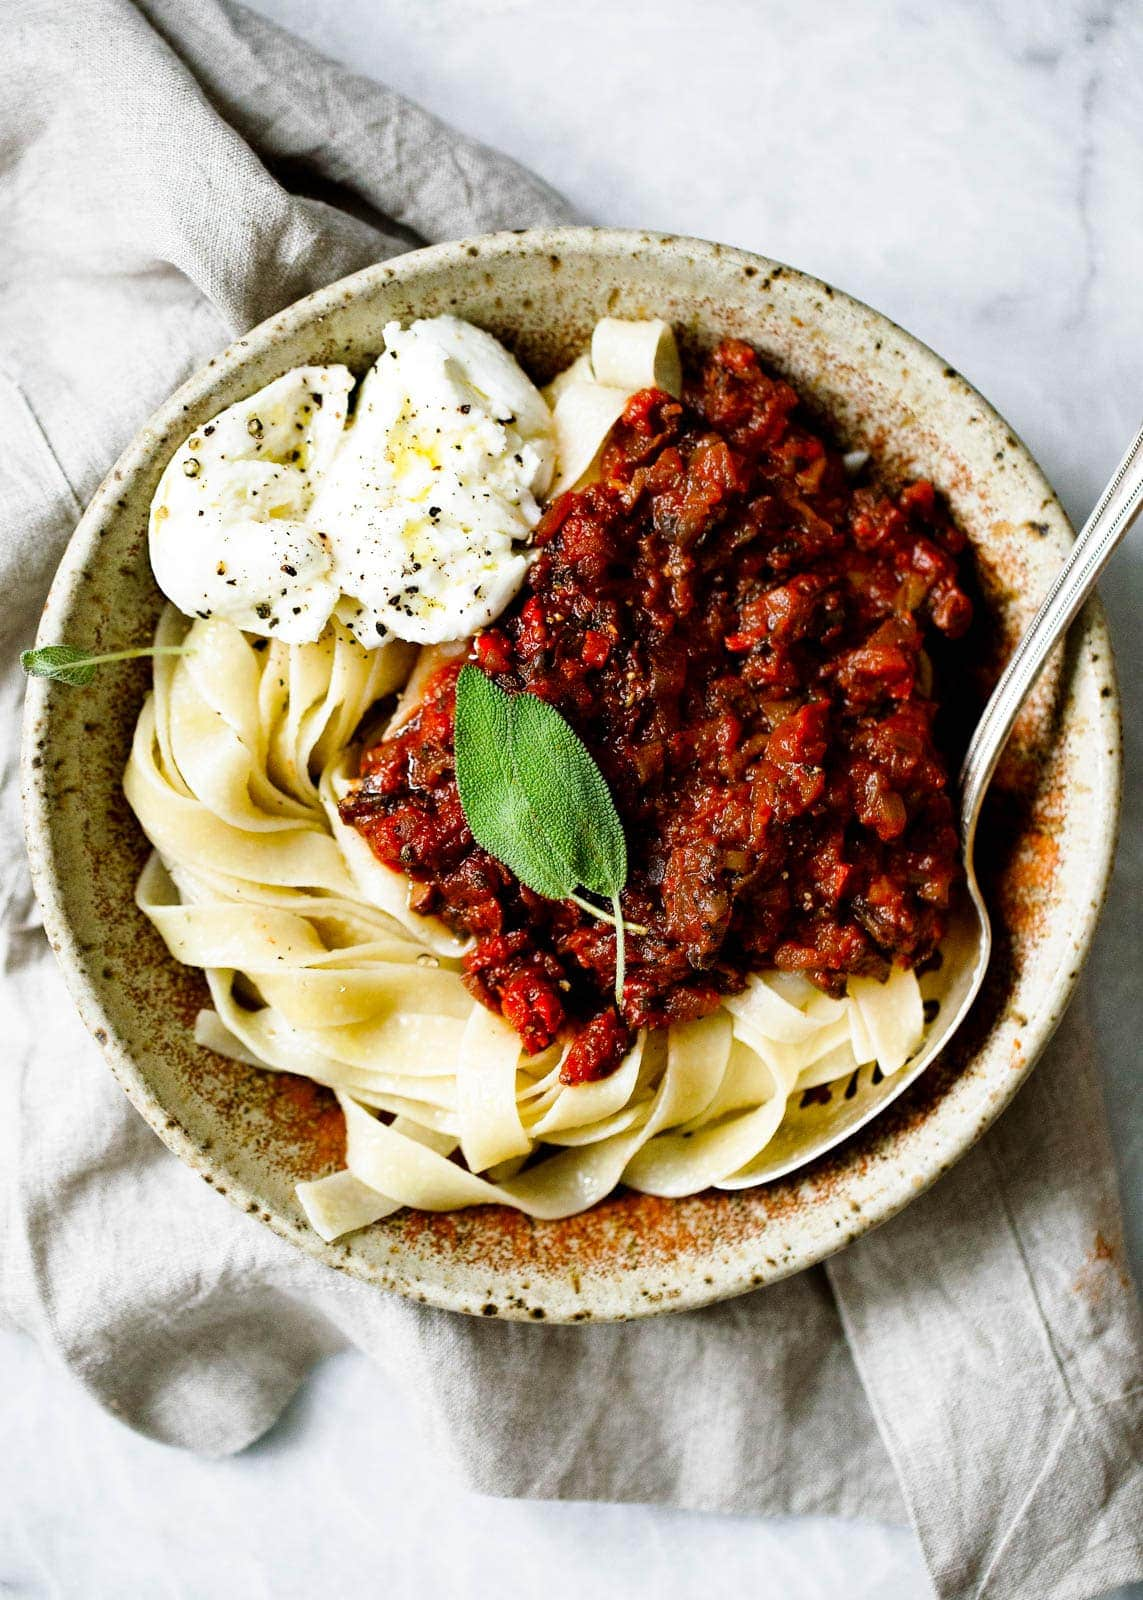 A mushroom bolognese so hearty and delicious you won't notice it's meatless!